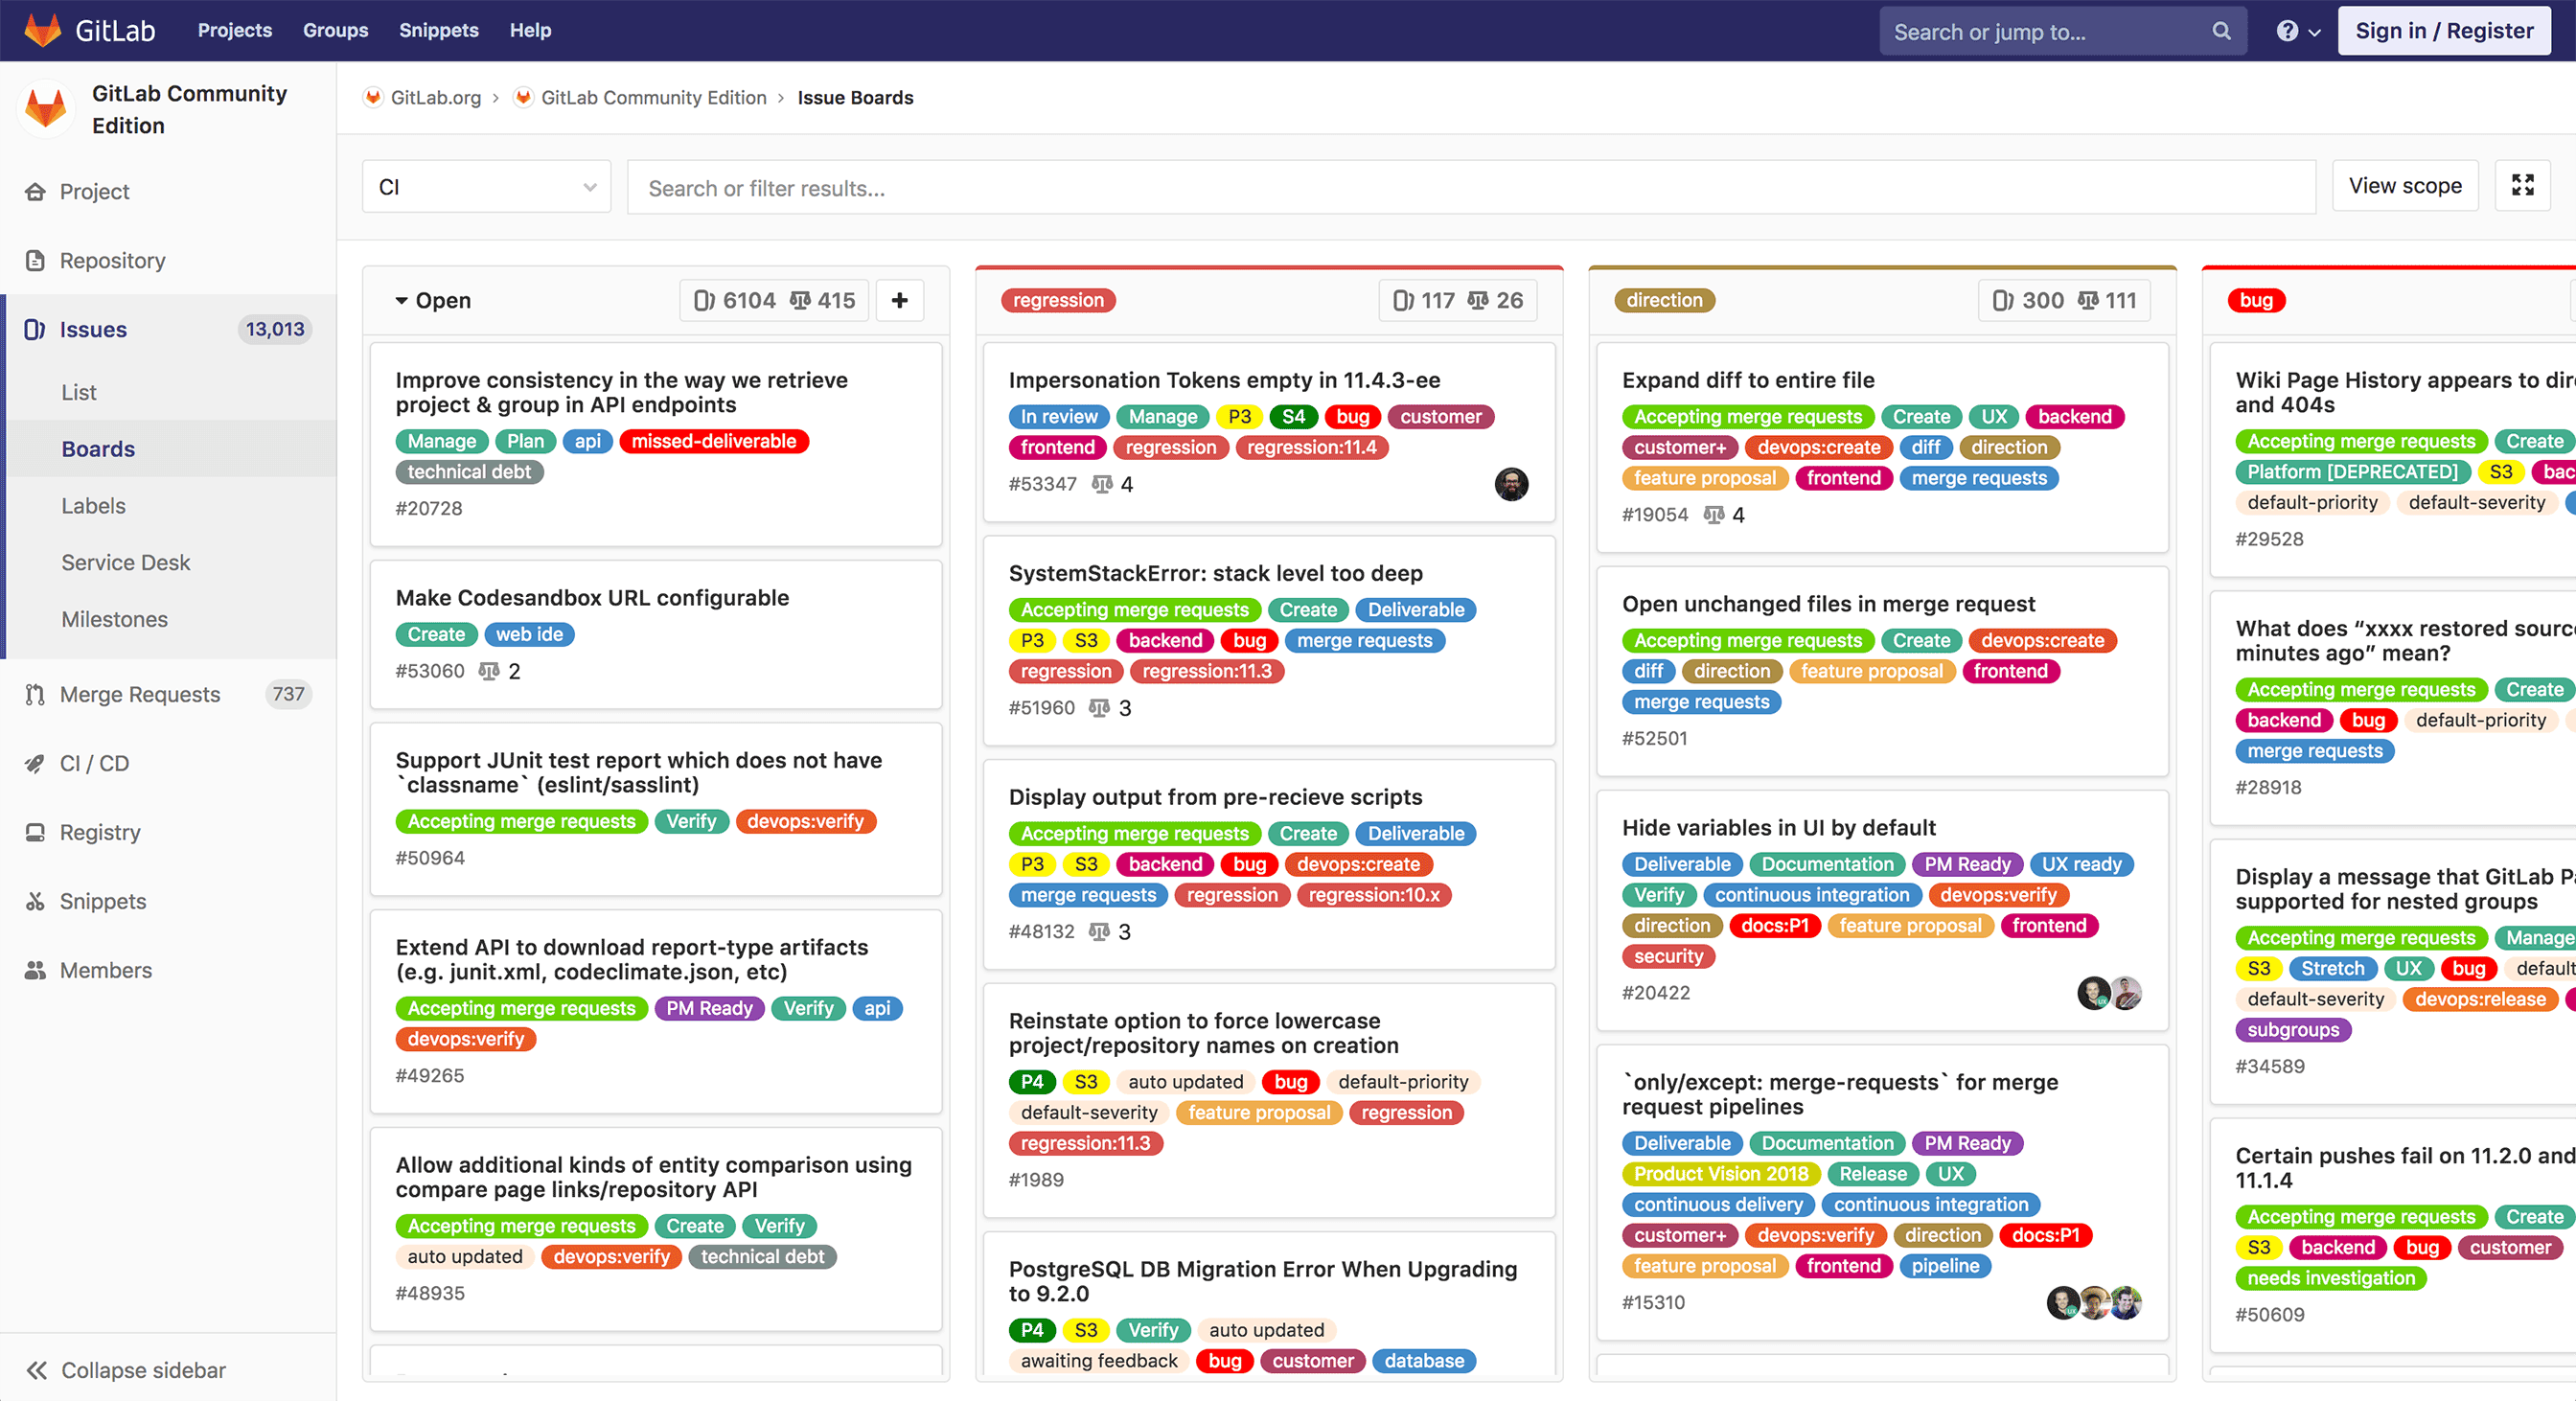 doc/user/project/img/issue_board.png